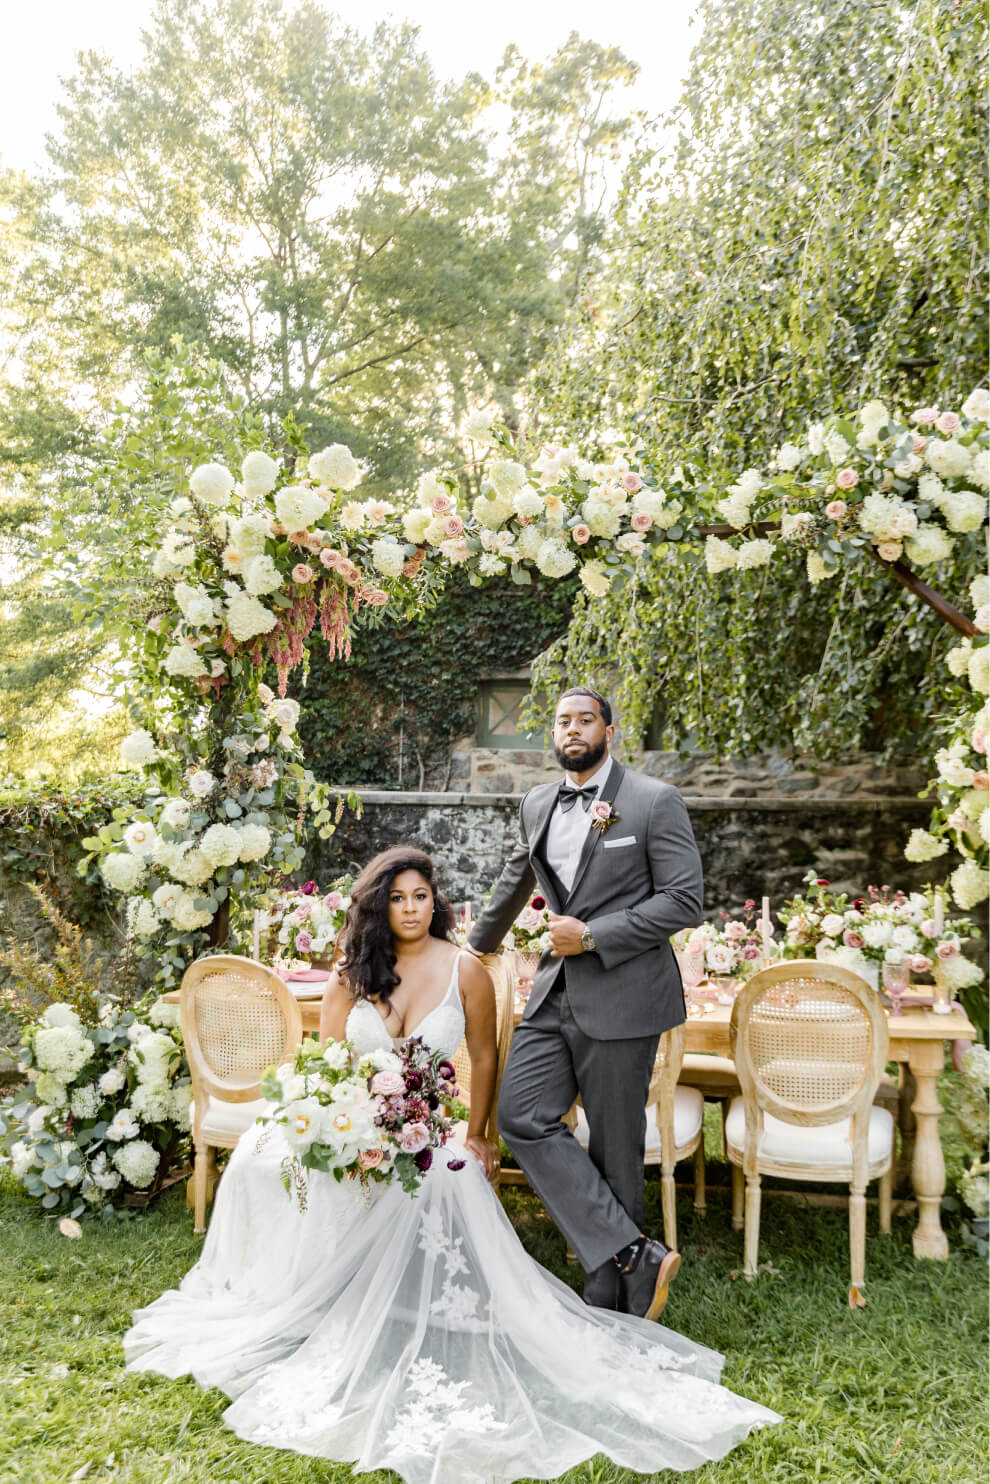 Whimsical Garden Wedding Styled Shoot